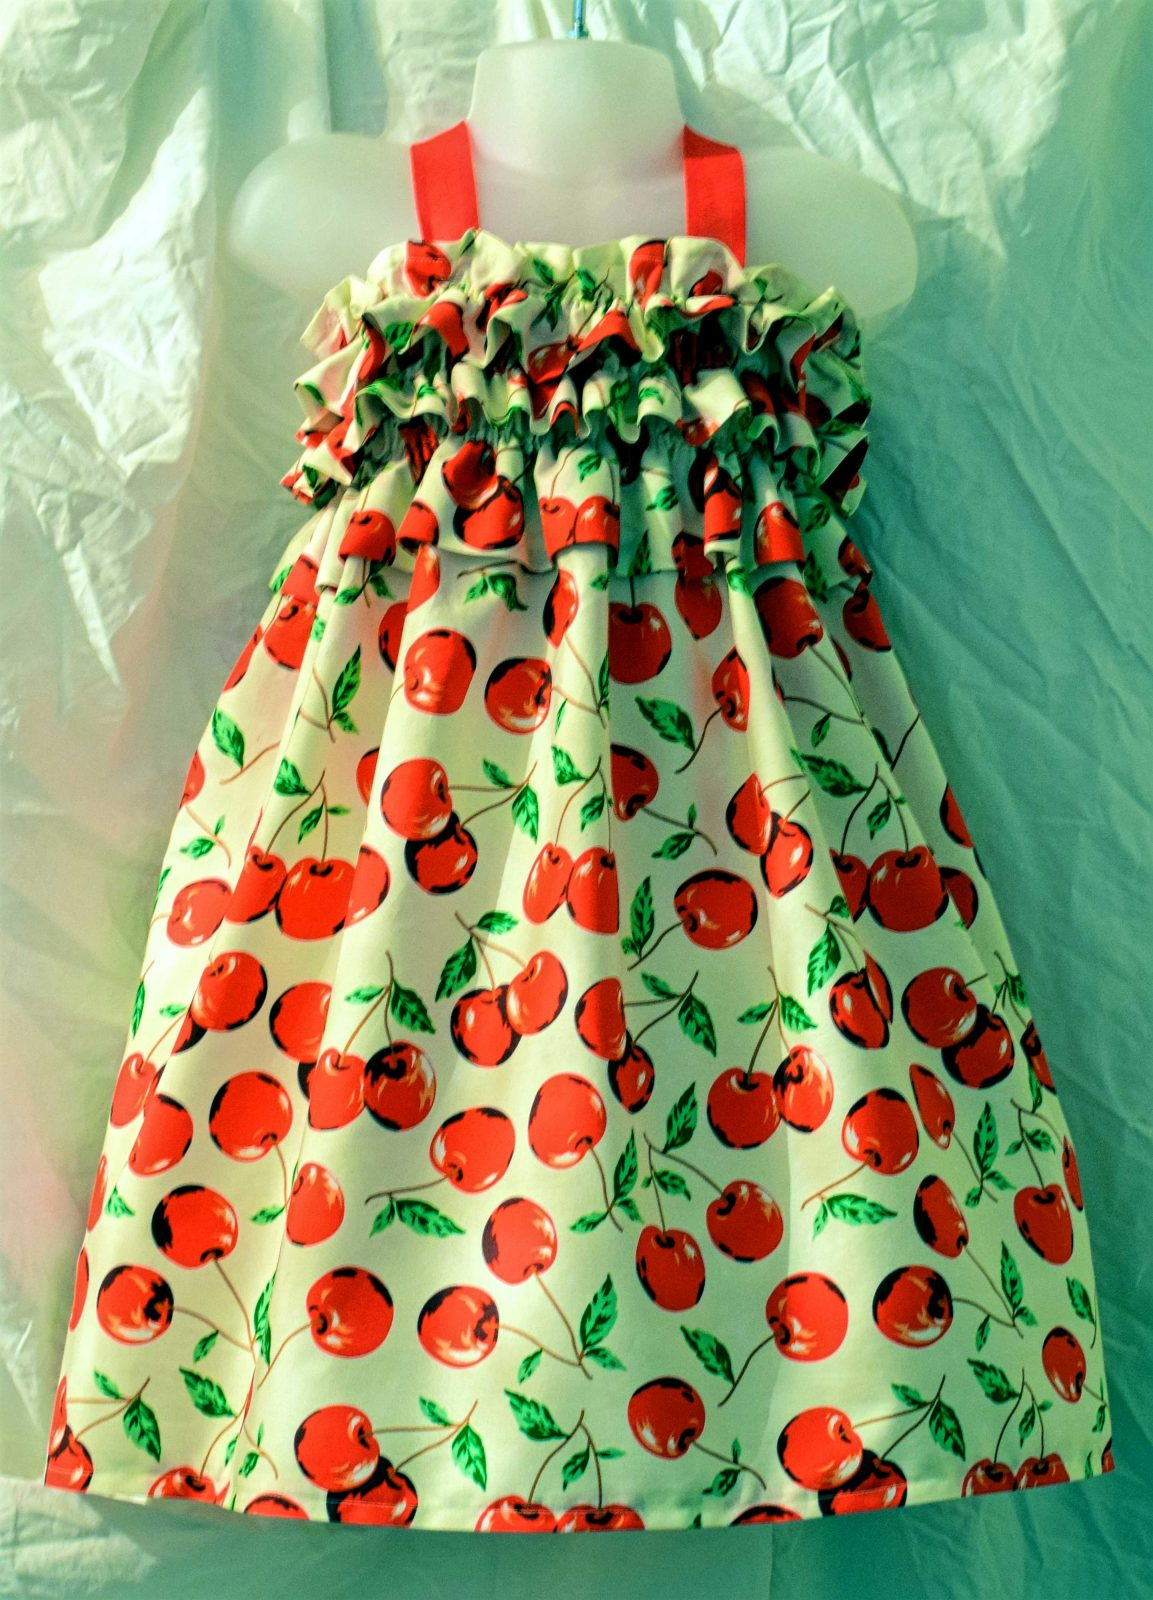 Bowl of Cherries Dress made with printed fabrics